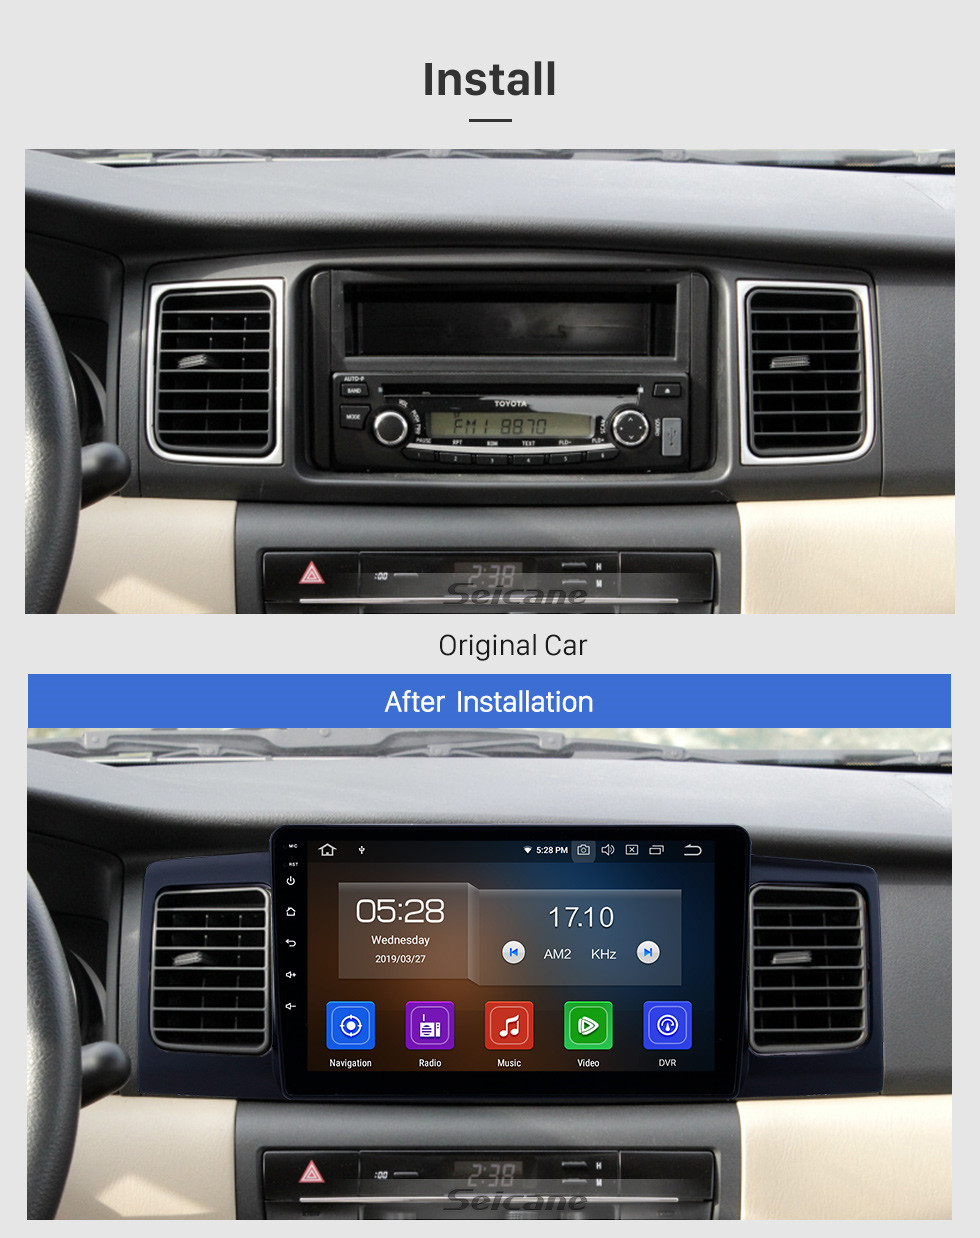 Seicane 2013 Toyota Corolla/BYD F3 Android 10.0 9 inch GPS Navigation Radio Bluetooth HD Touchscreen WIFI USB Carplay support Backup camera